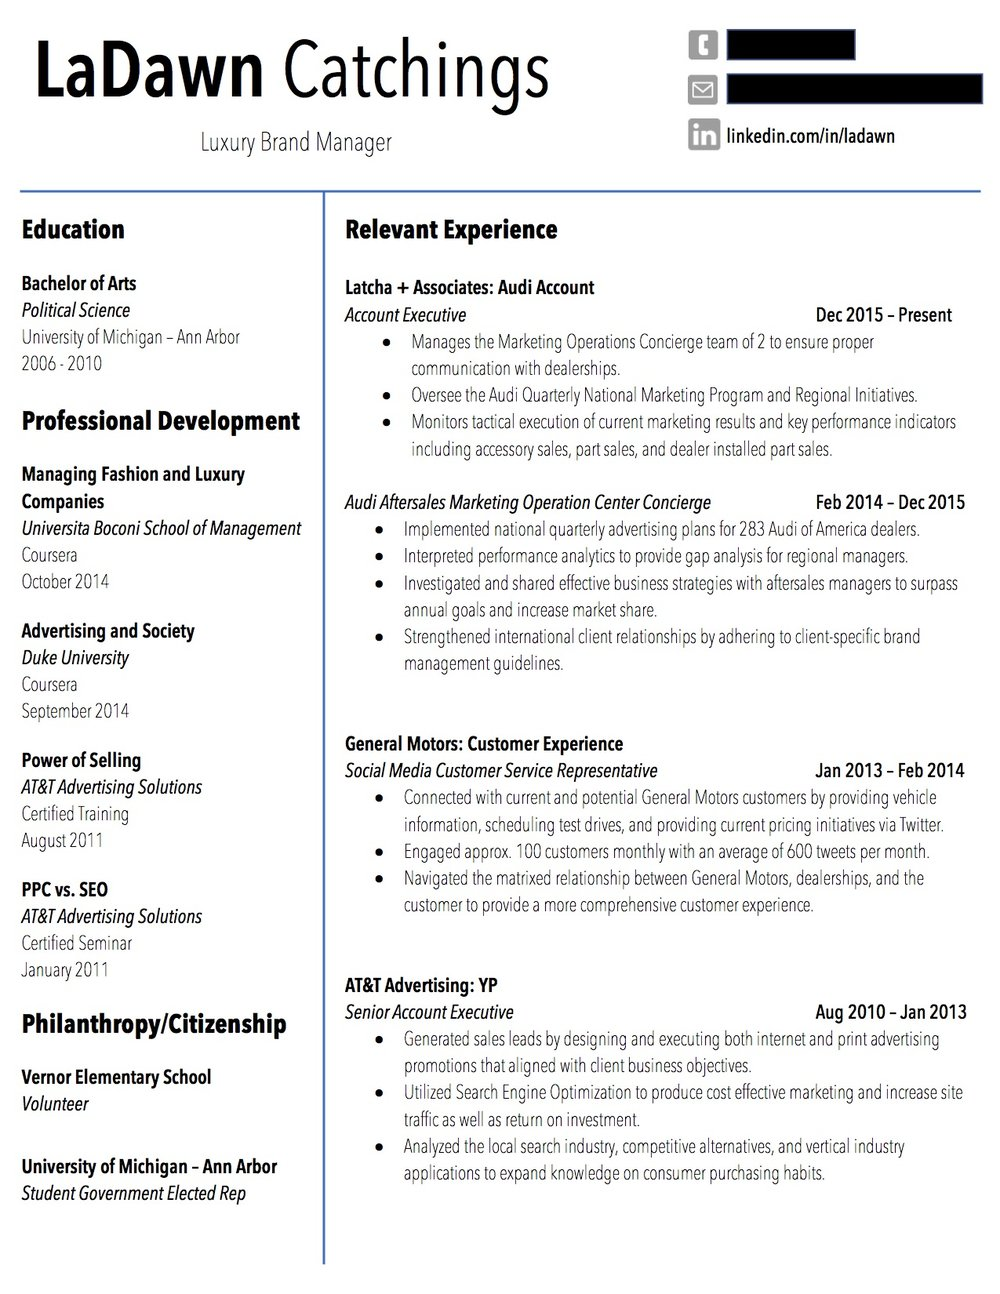 Client Resume #1. Click to enlarge.